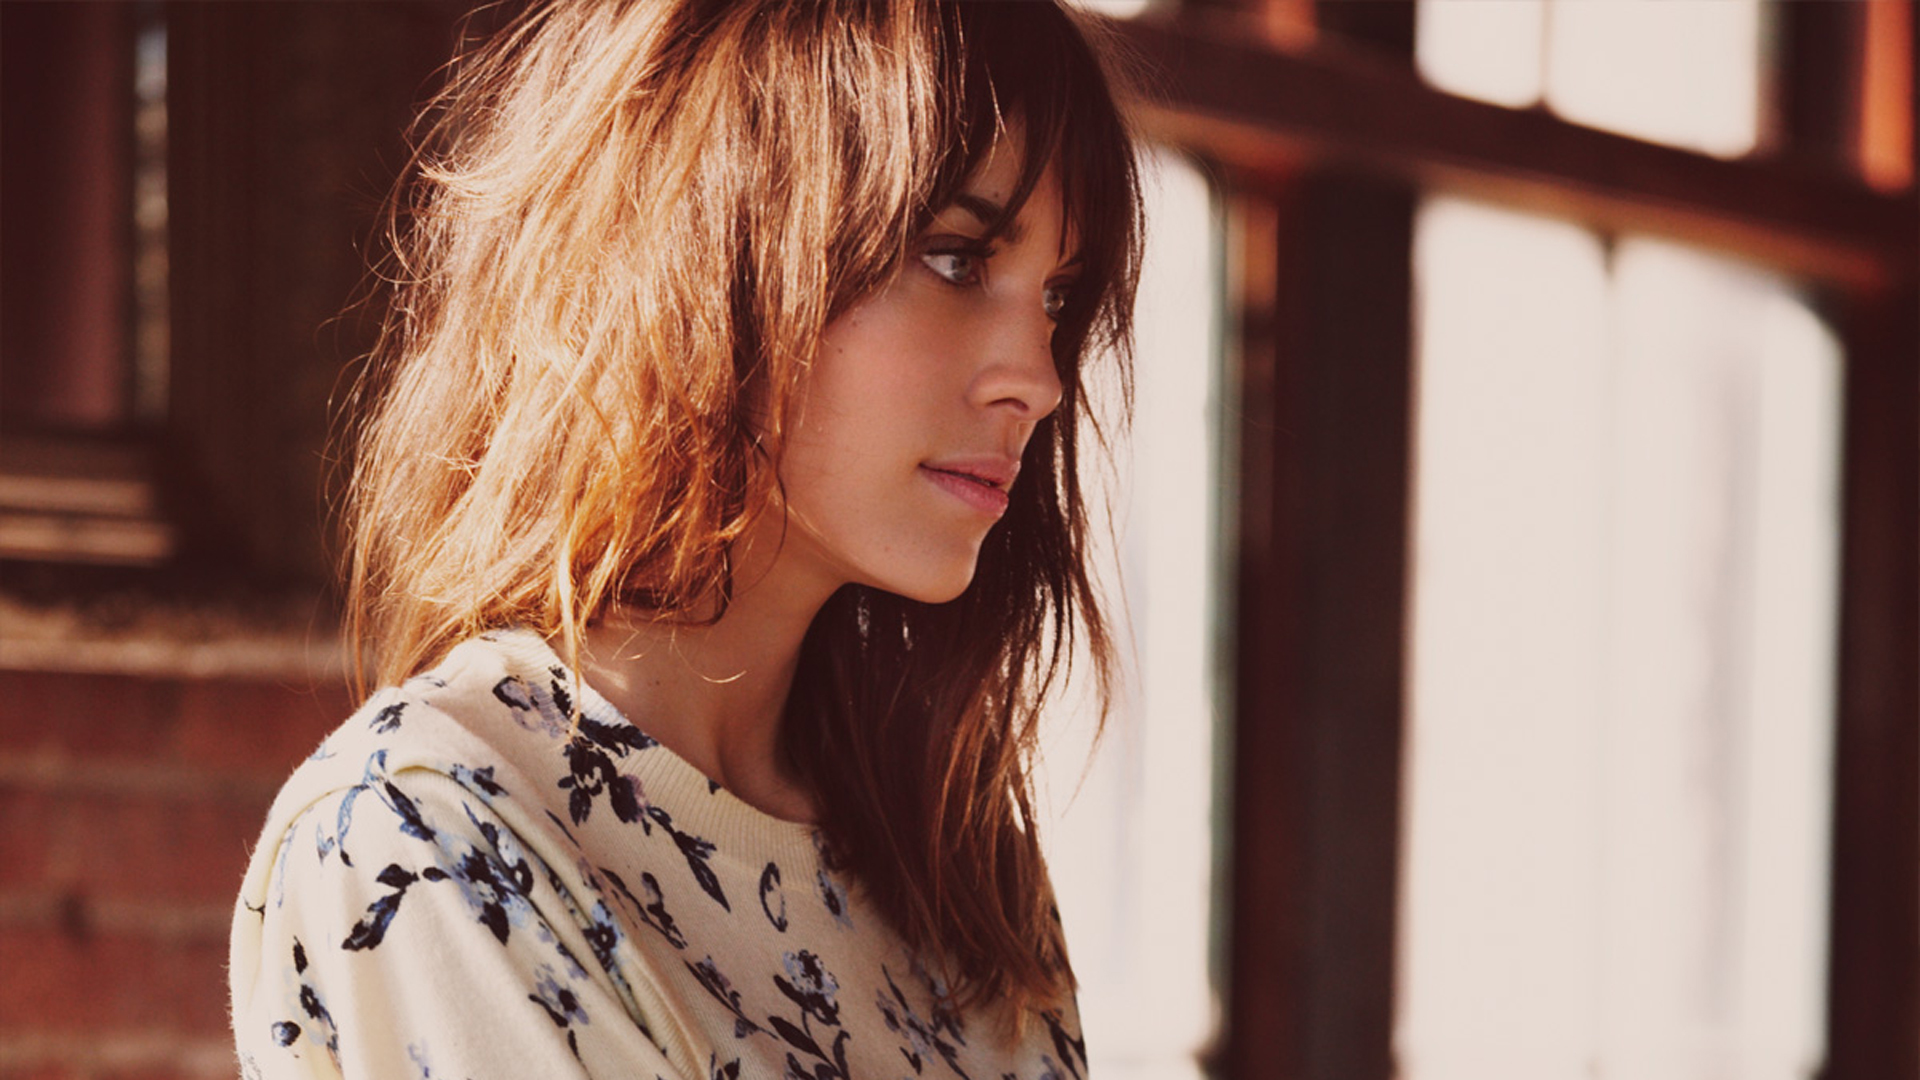 Alexa Chung Download Free Backgrounds HD